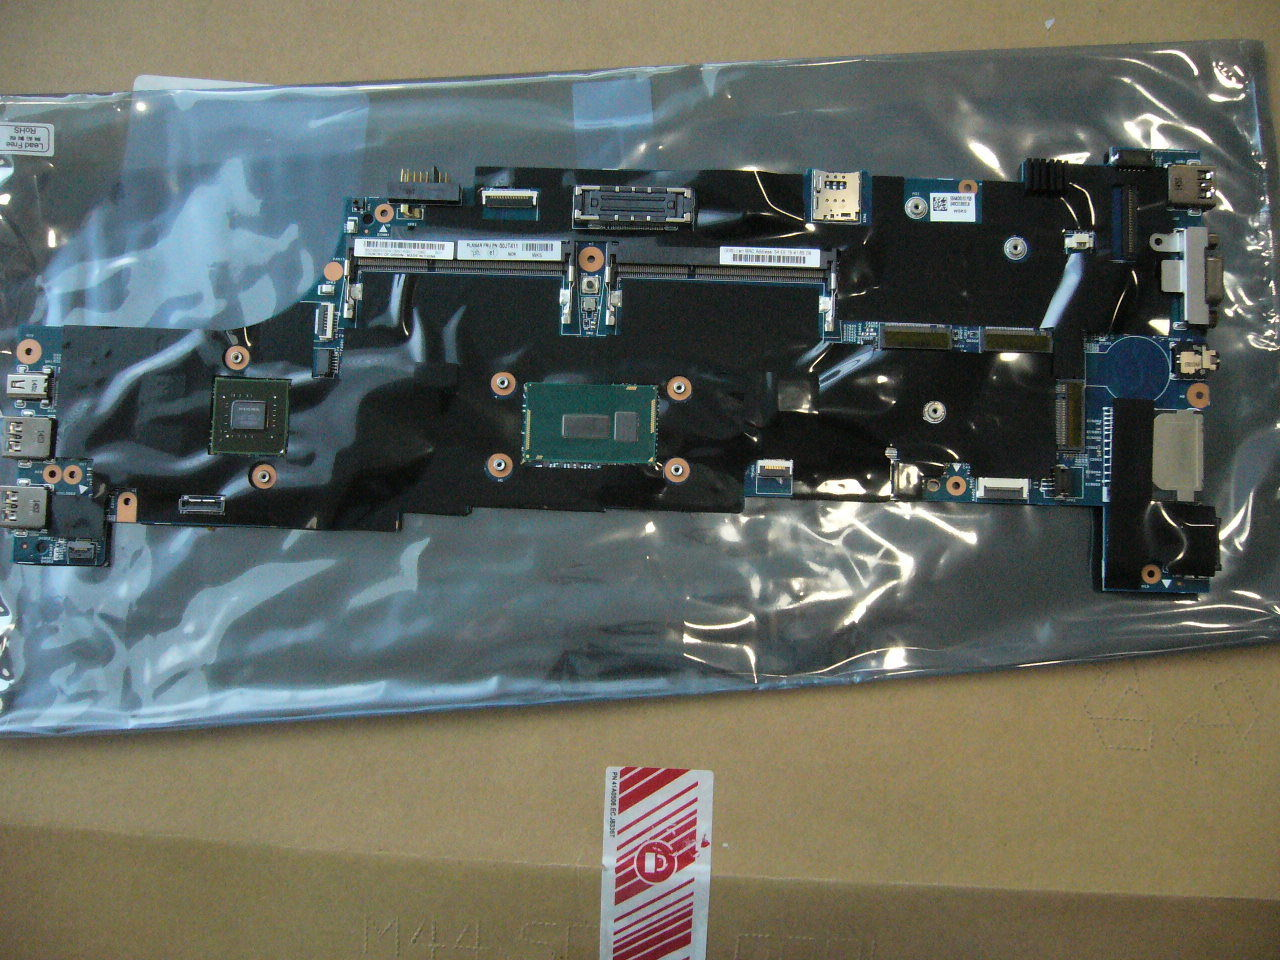 QTY 1x Lenovo Thinkpad W550S laptop motherboard intel i7-5500U 00JT411